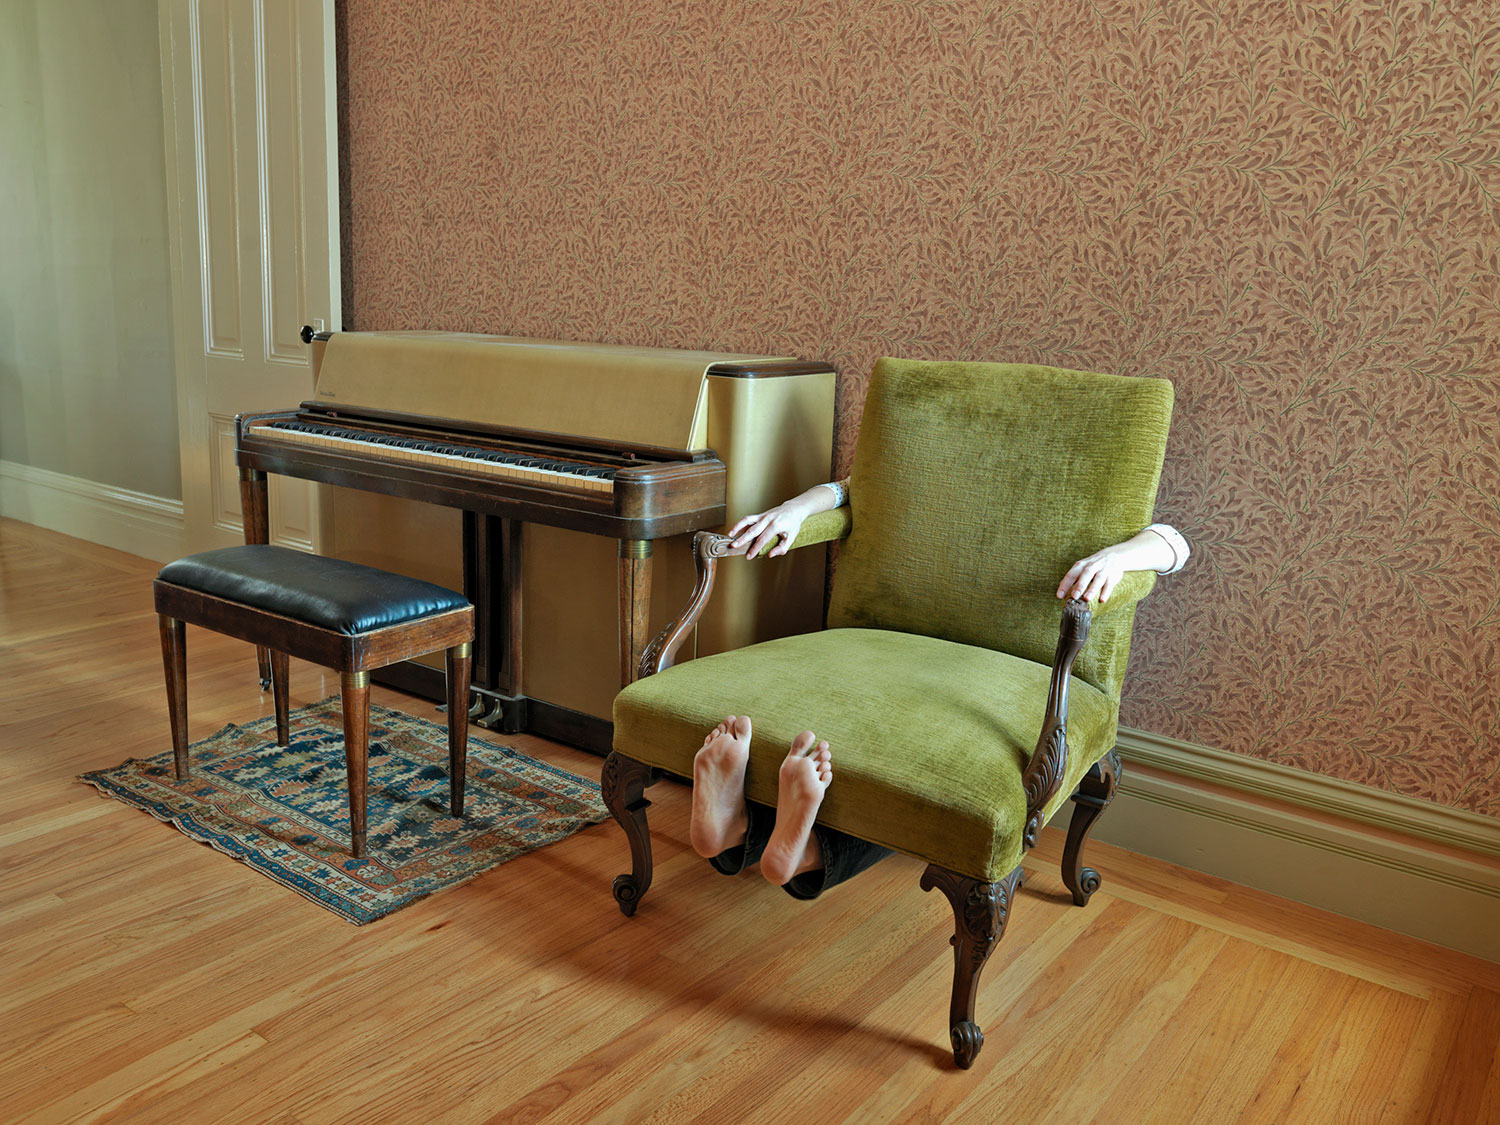 Design Free Thursday // Lee Materazzi.